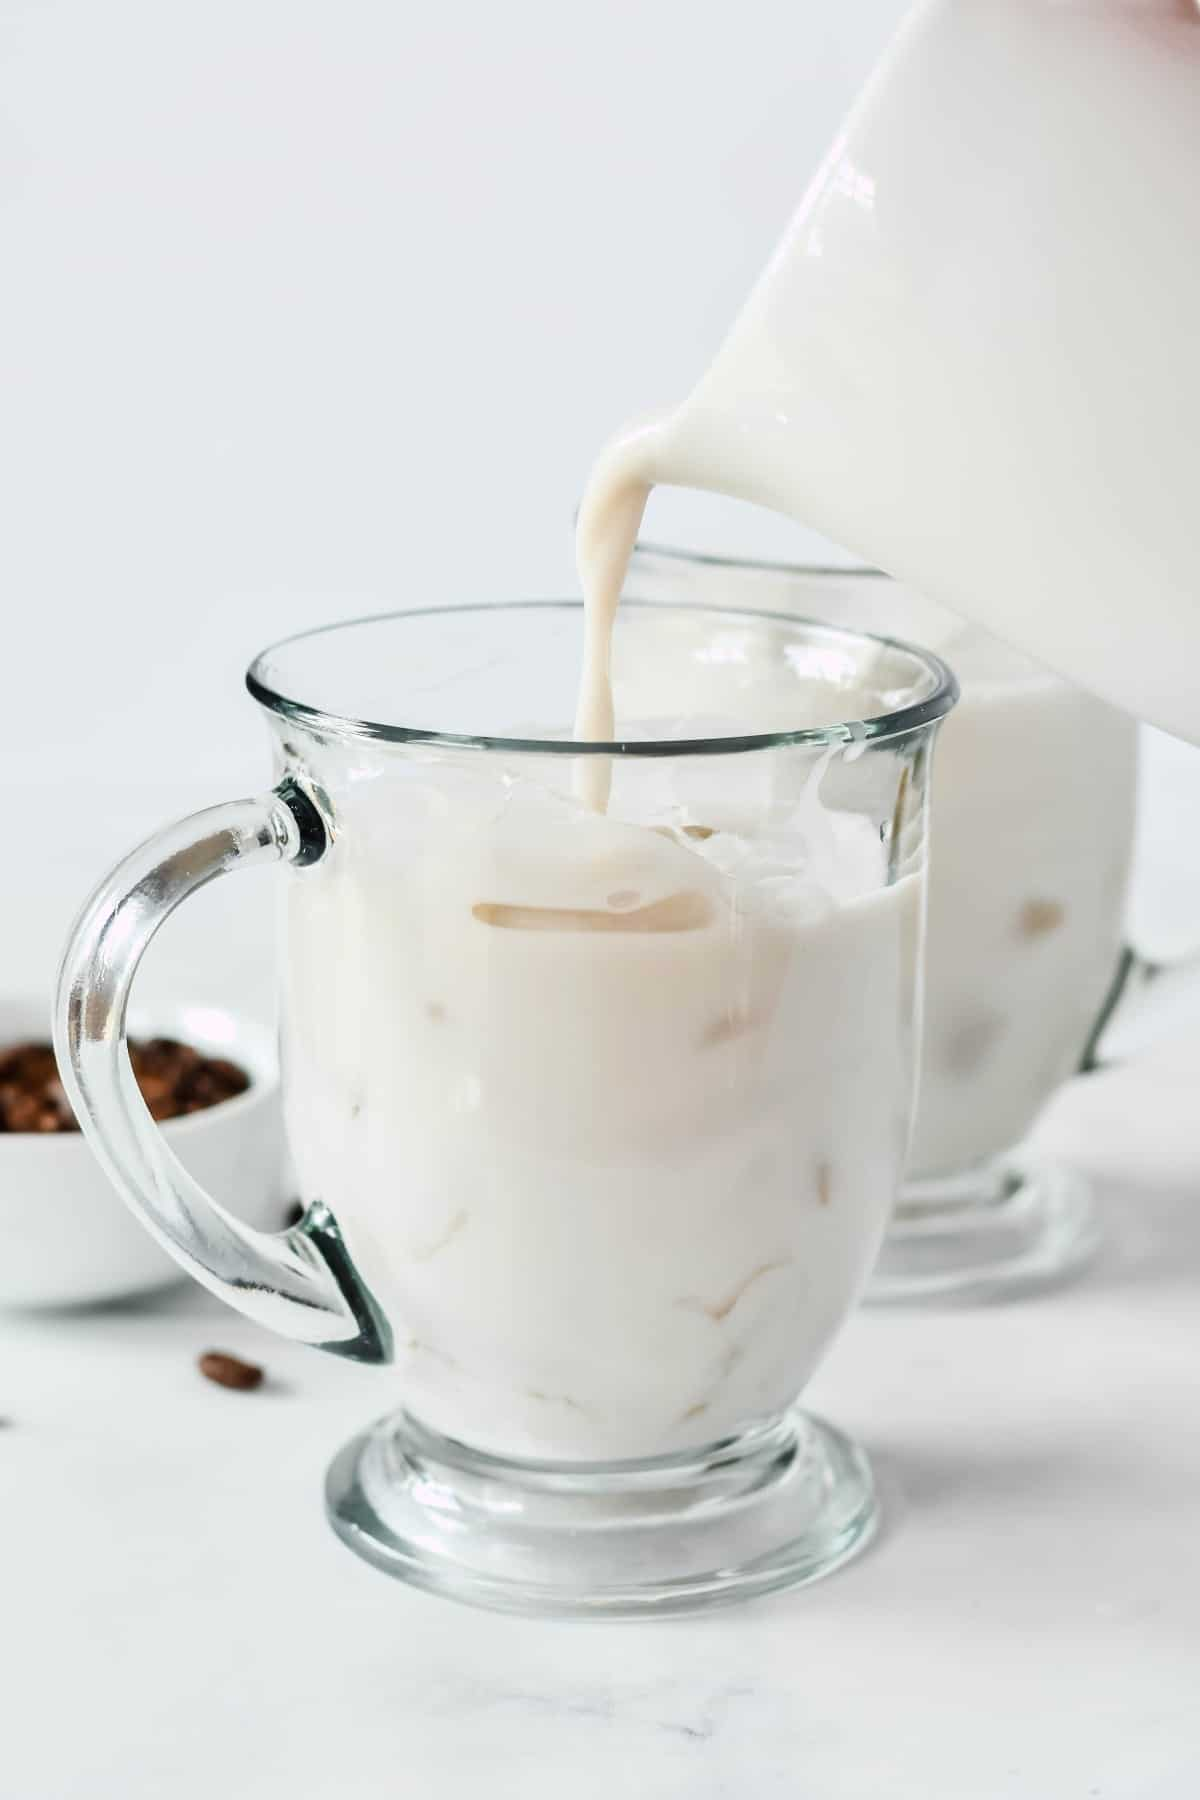 Dairy-free milk is being poured from a pitcher into a clear glass mug filled with ice.